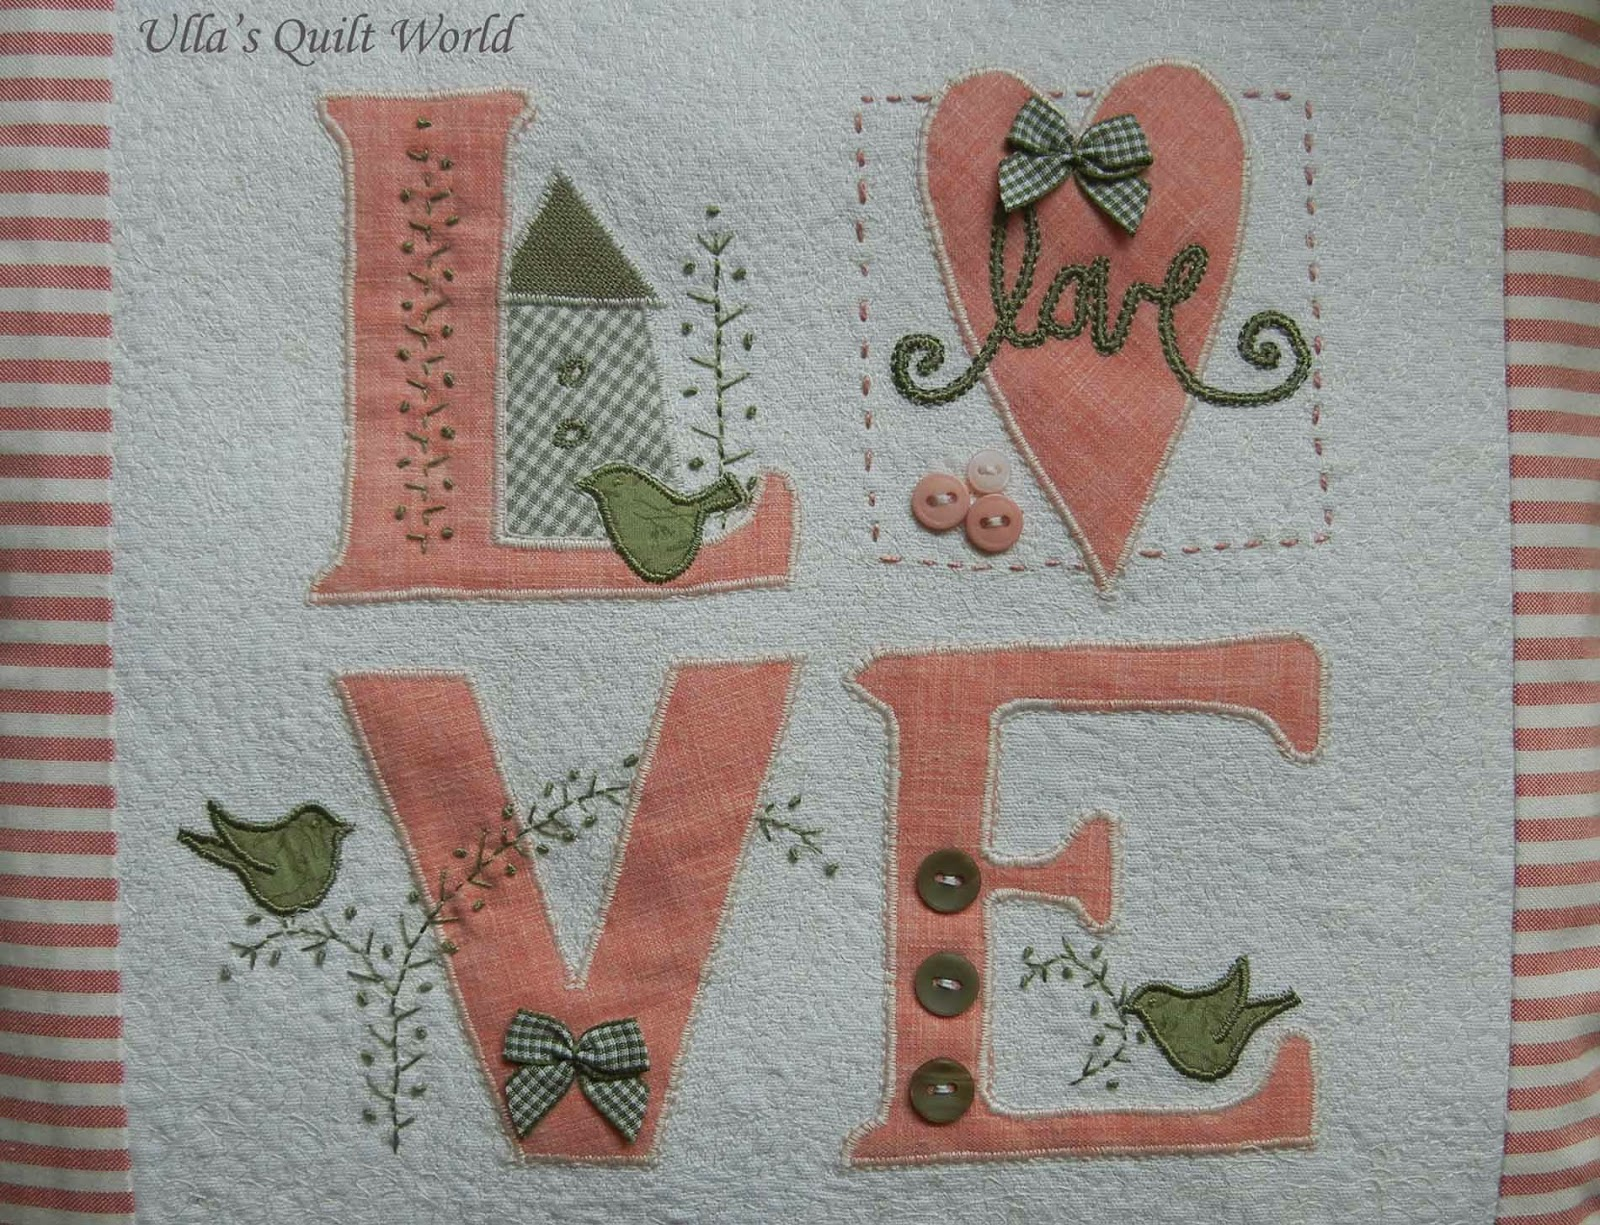 Quilting Patterns For Pillow Covers : Ulla s Quilt World